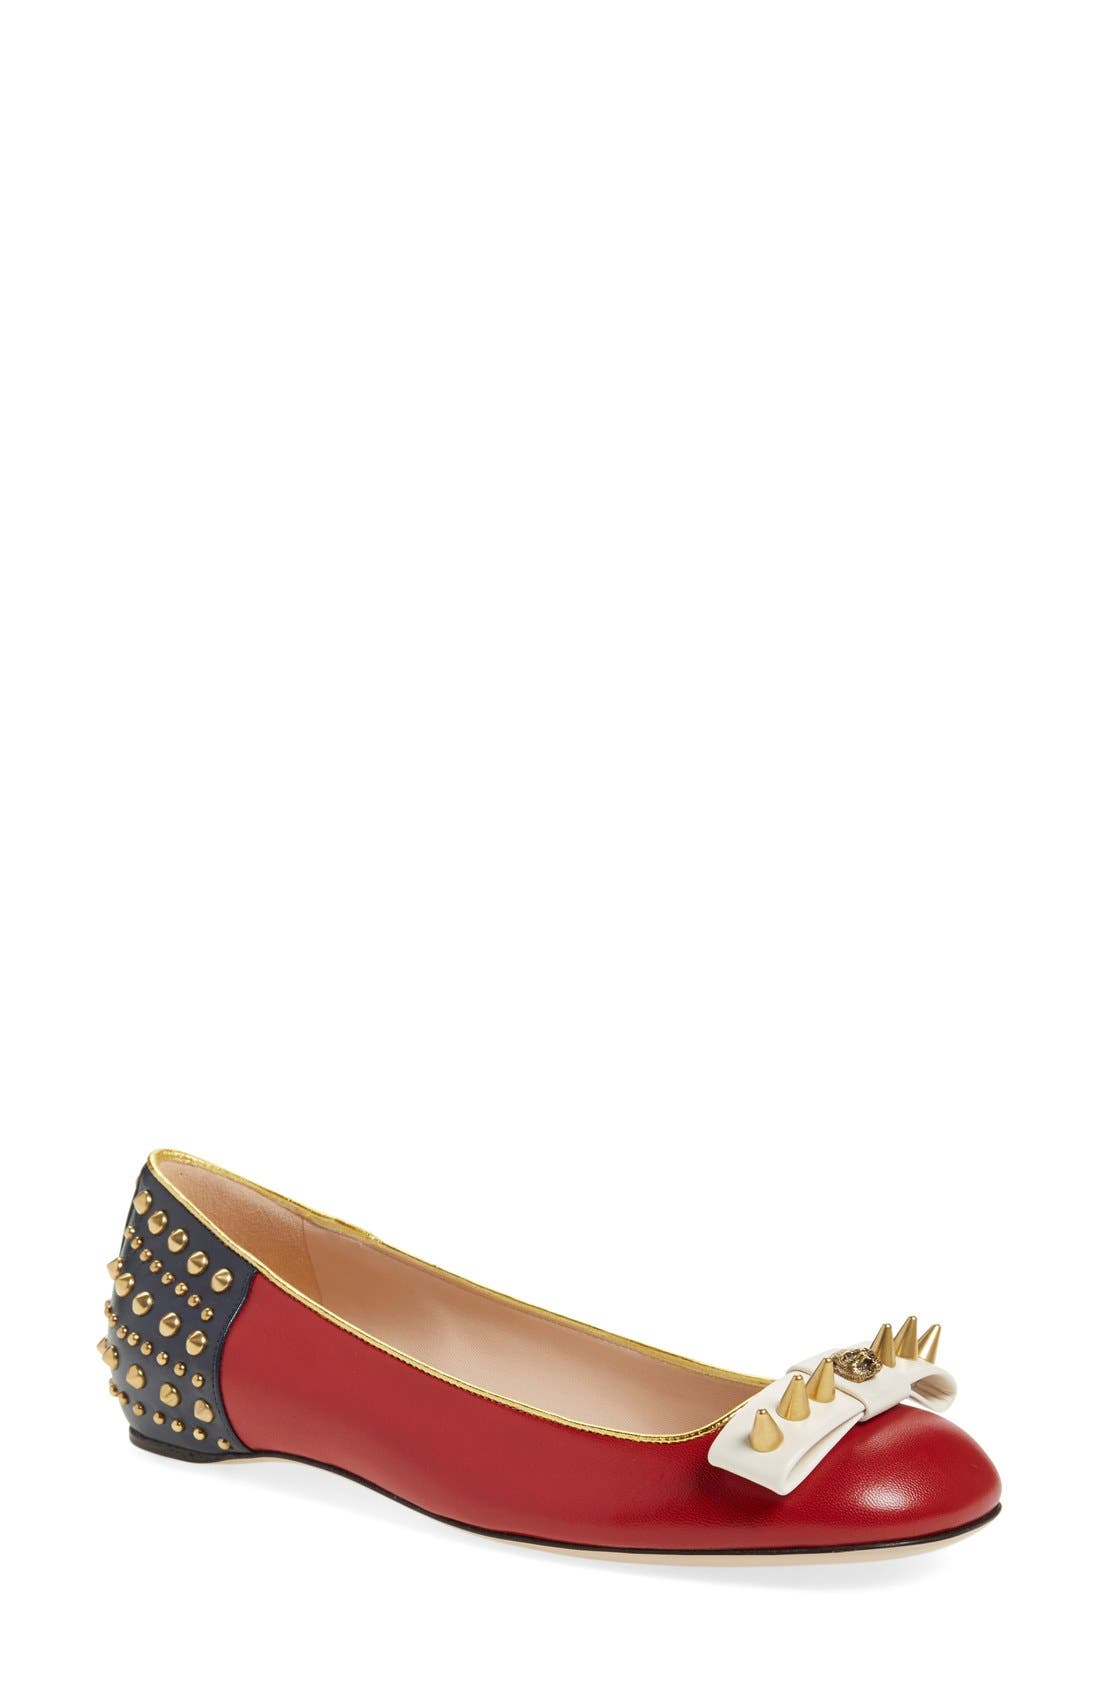 GUCCI 'Lexi' Studded Square Toe Flat